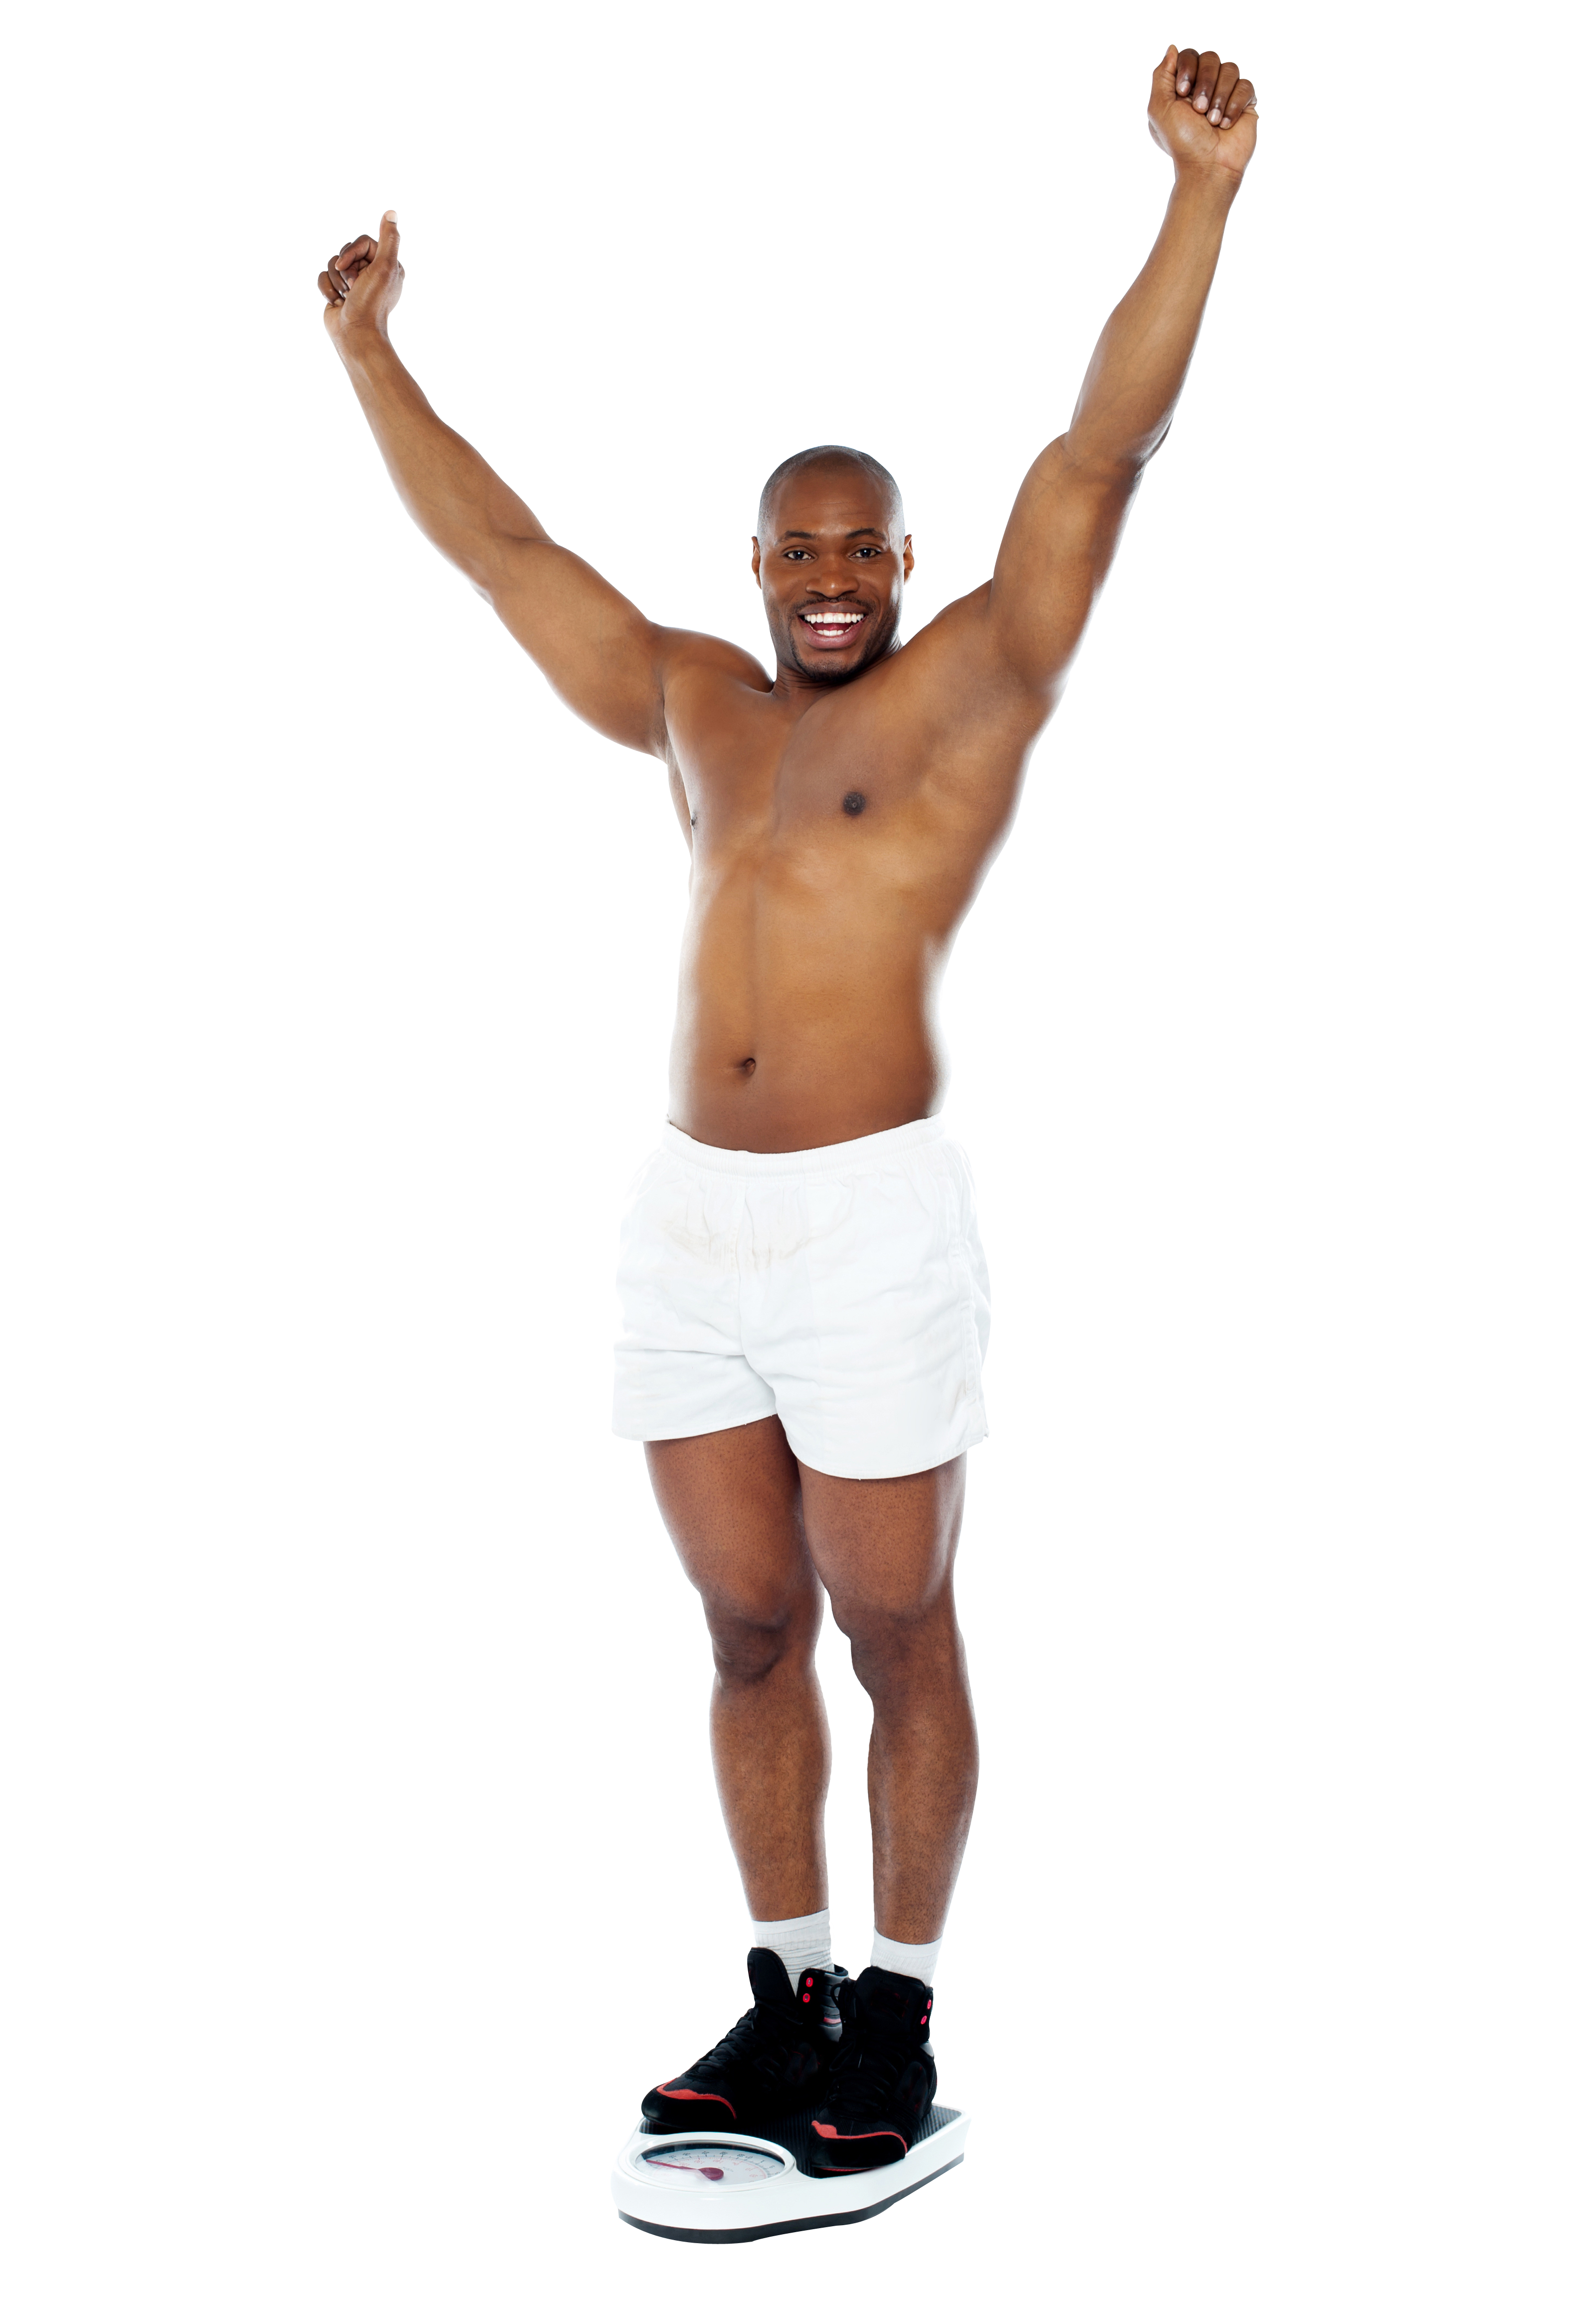 Free png images for commercial use. Men fitness image play